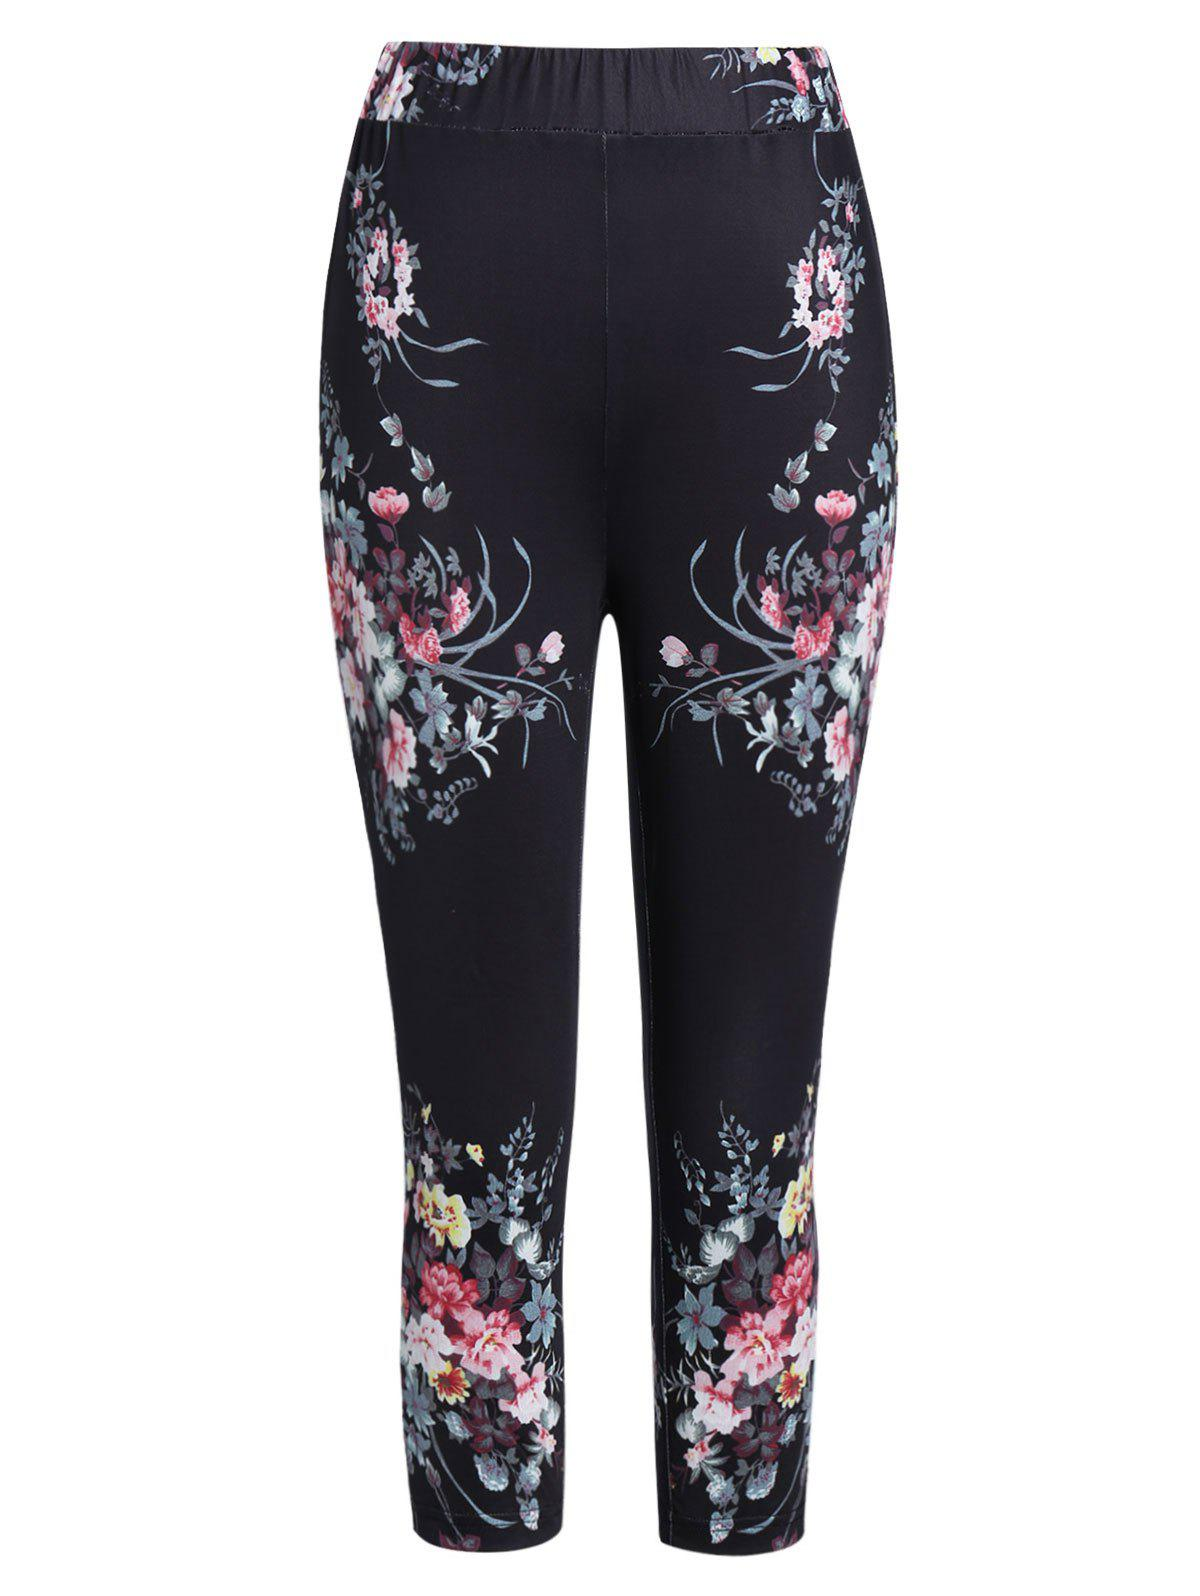 Flower Print High Waisted Capri Leggings - BLACK 2XL